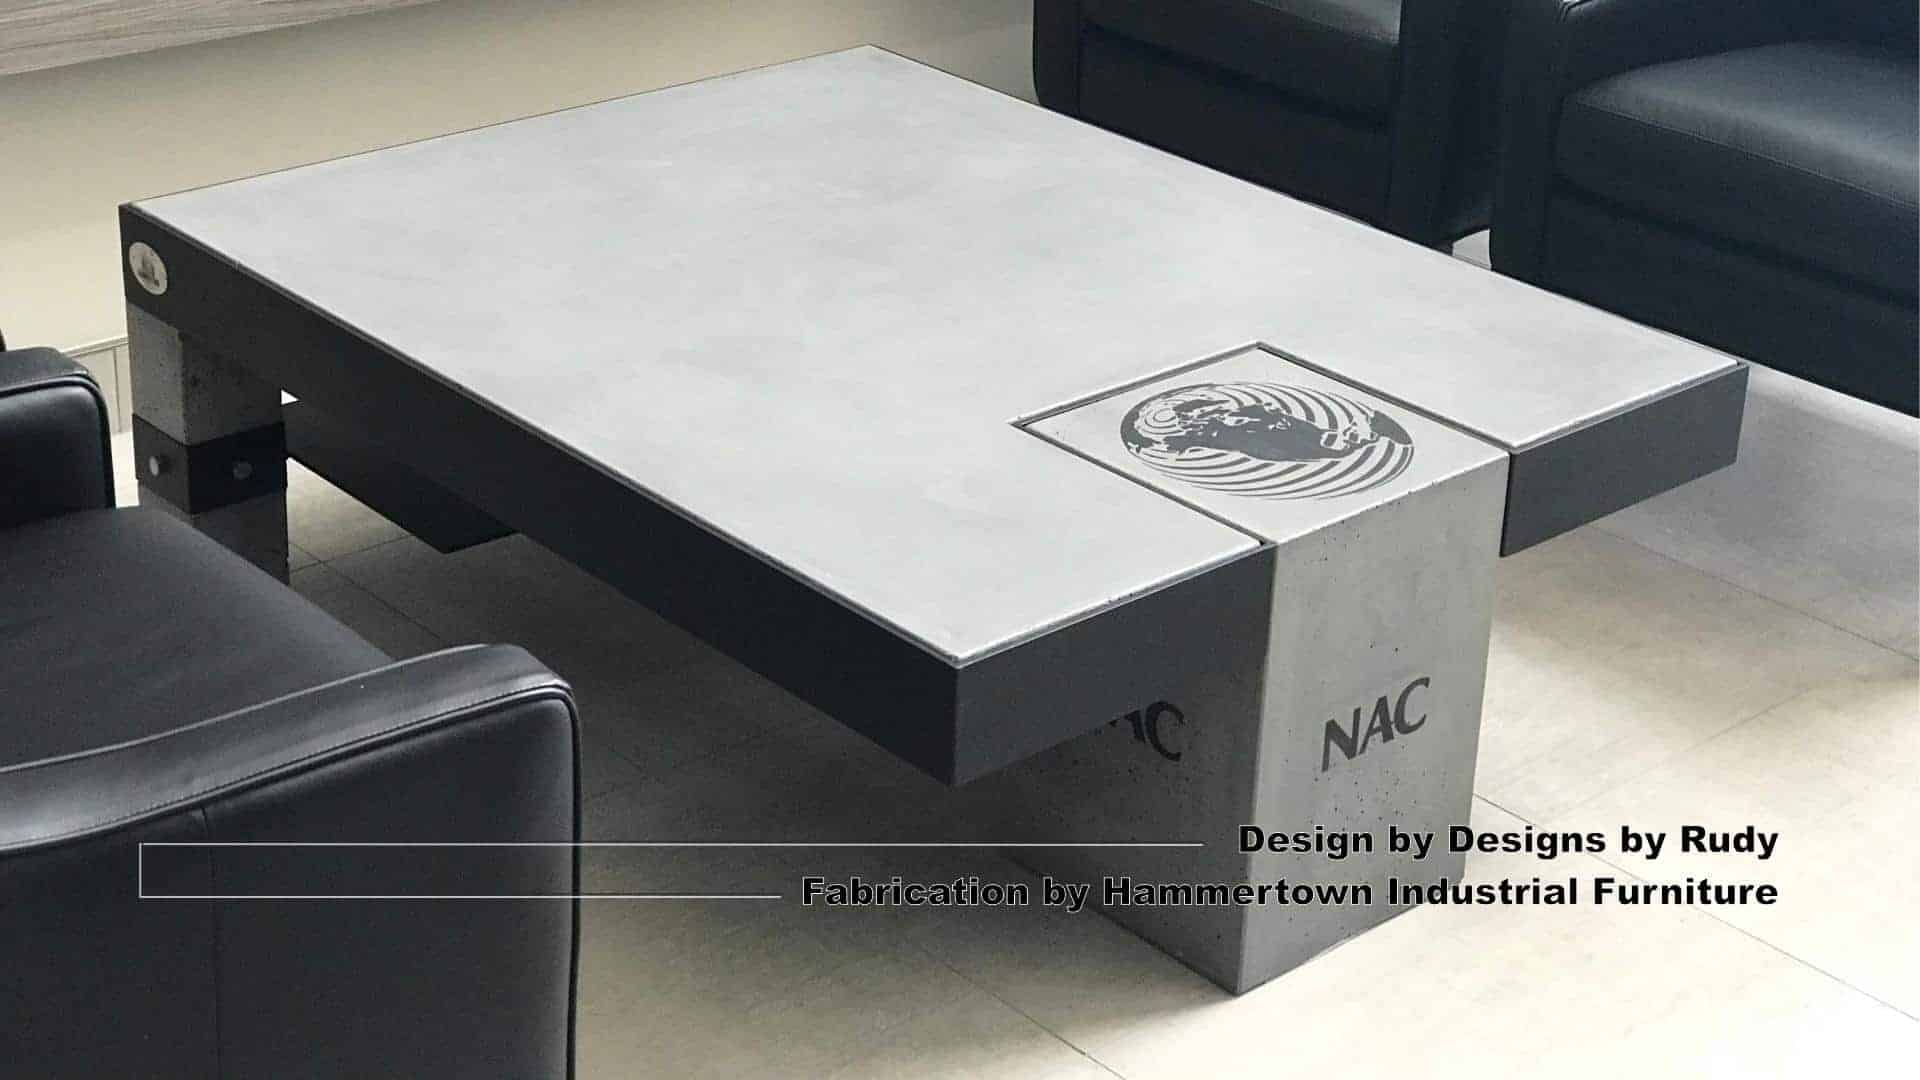 Concrete and steel coffee table for NAC, Designs by Rudy, Hammertown Industrial Furniture, view 2